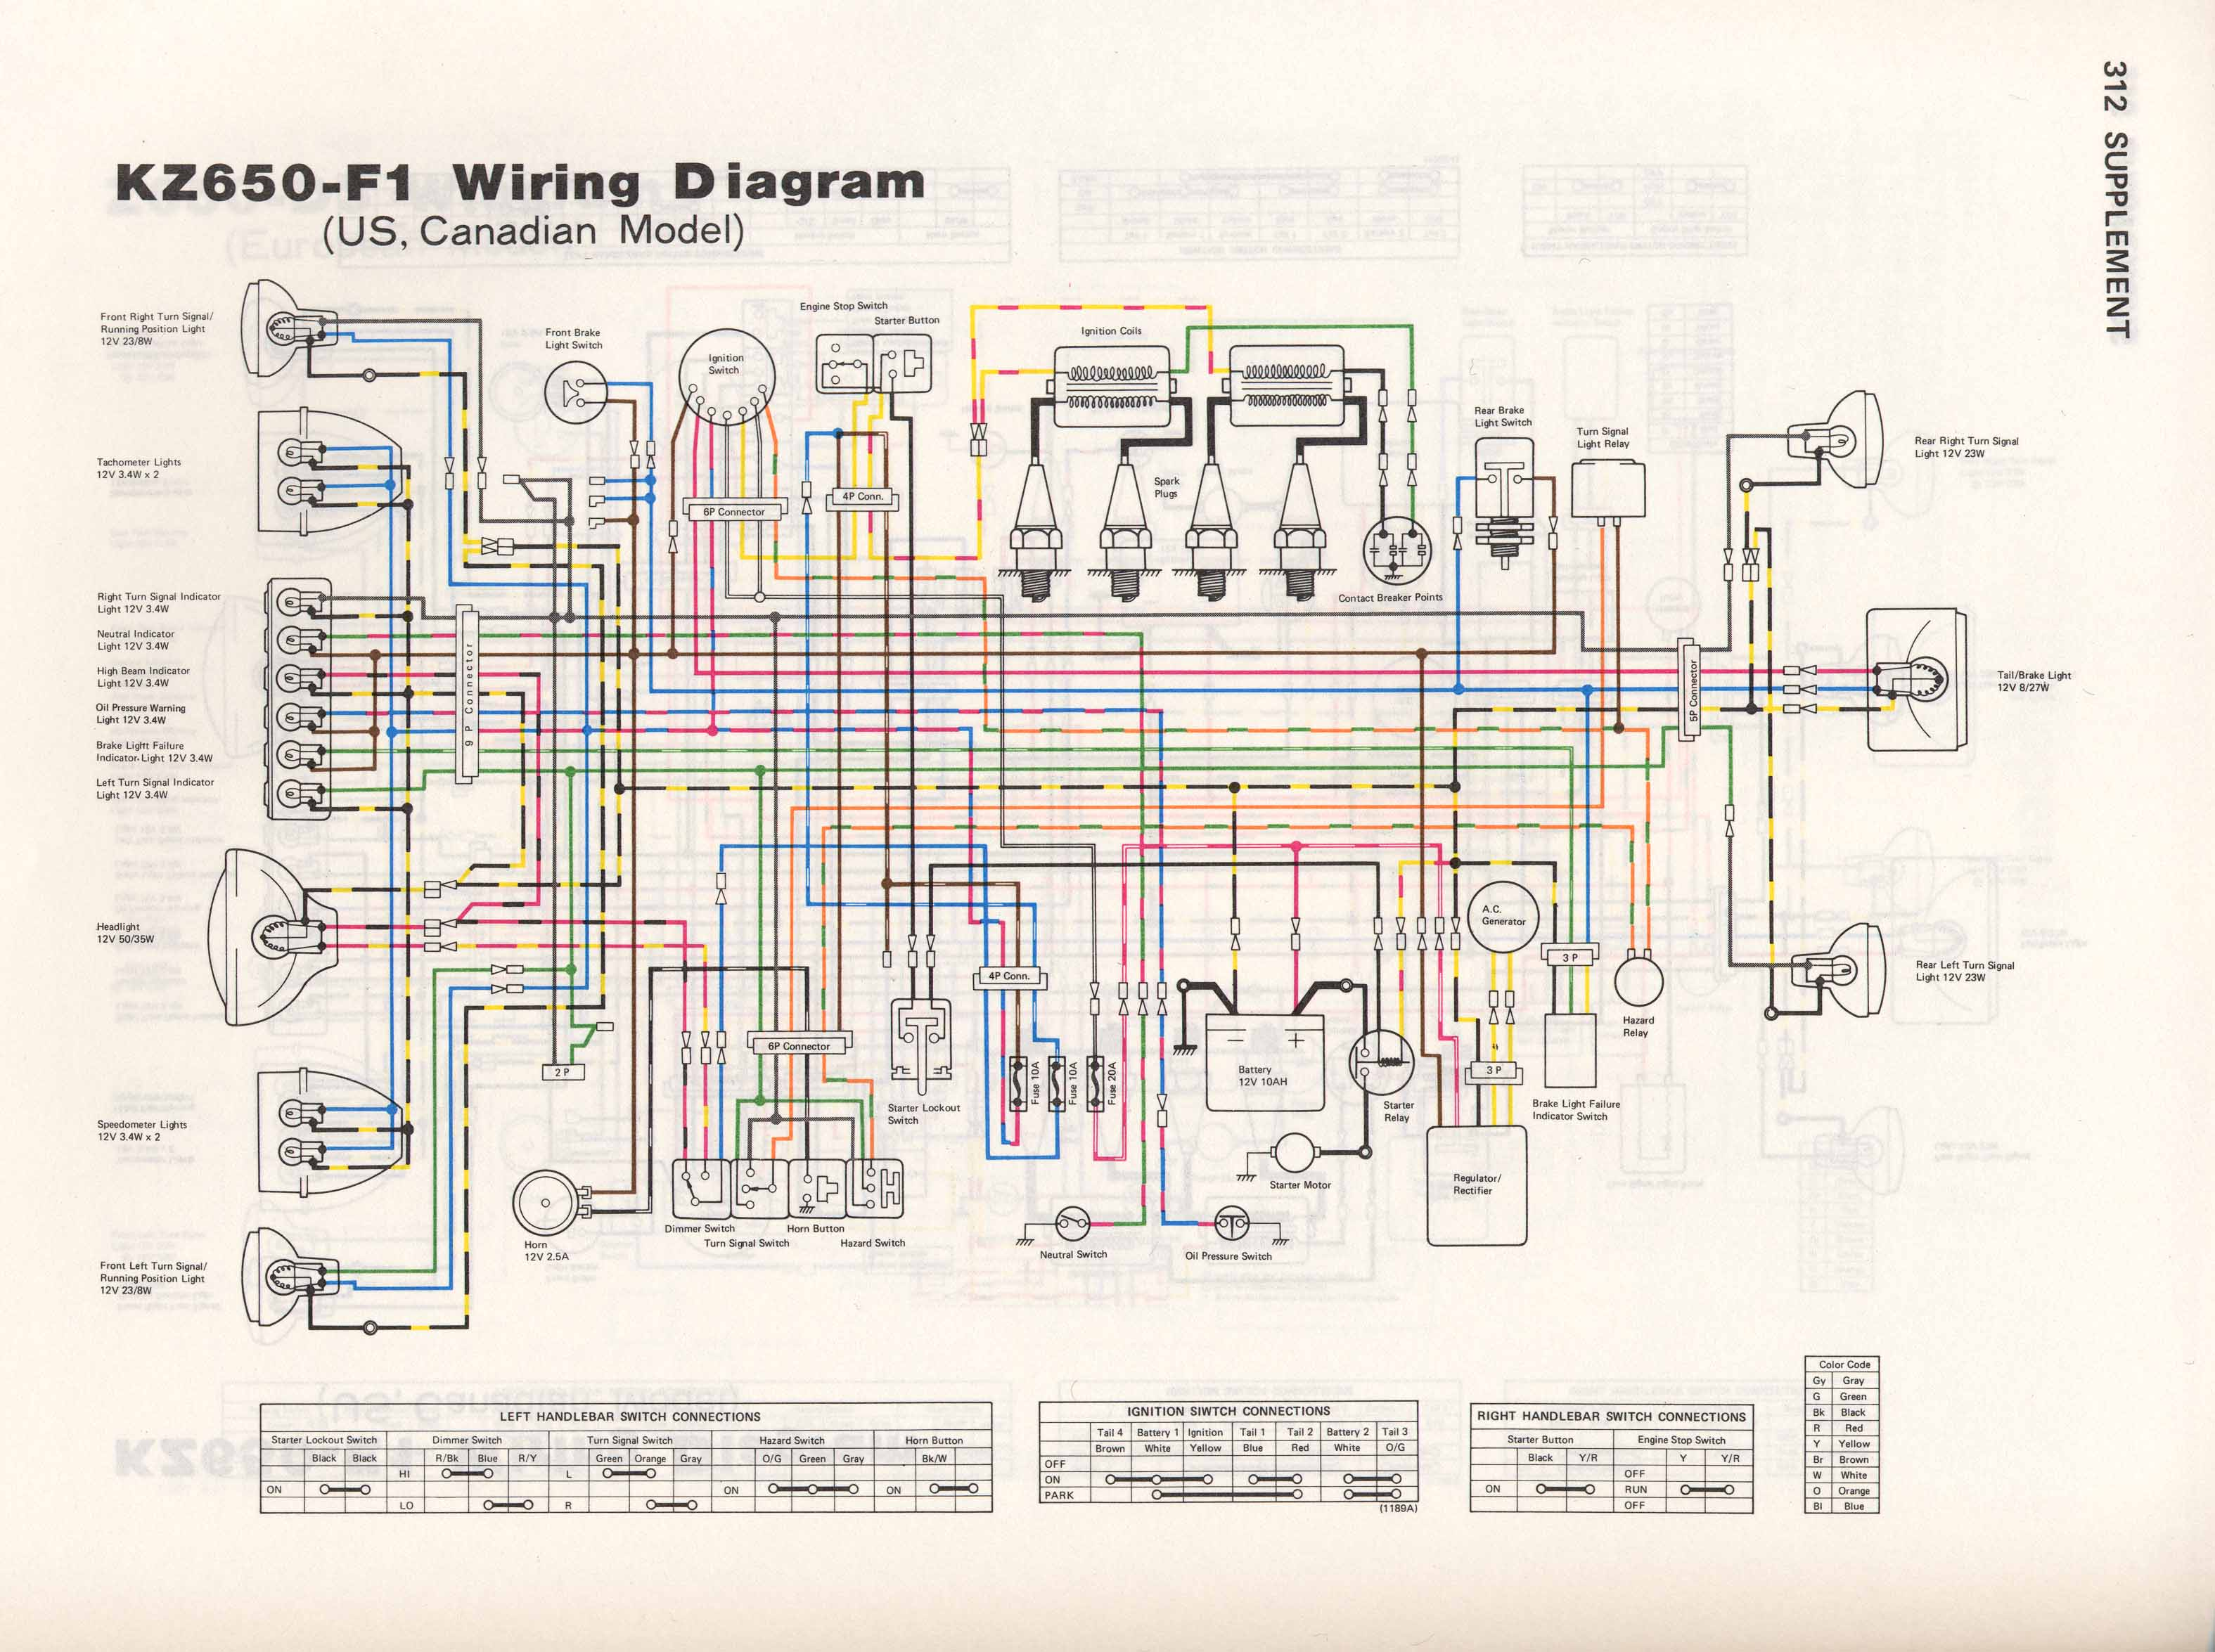 KZ650 F1 kz650 info wiring diagrams Yamaha Wiring Schematic at bayanpartner.co